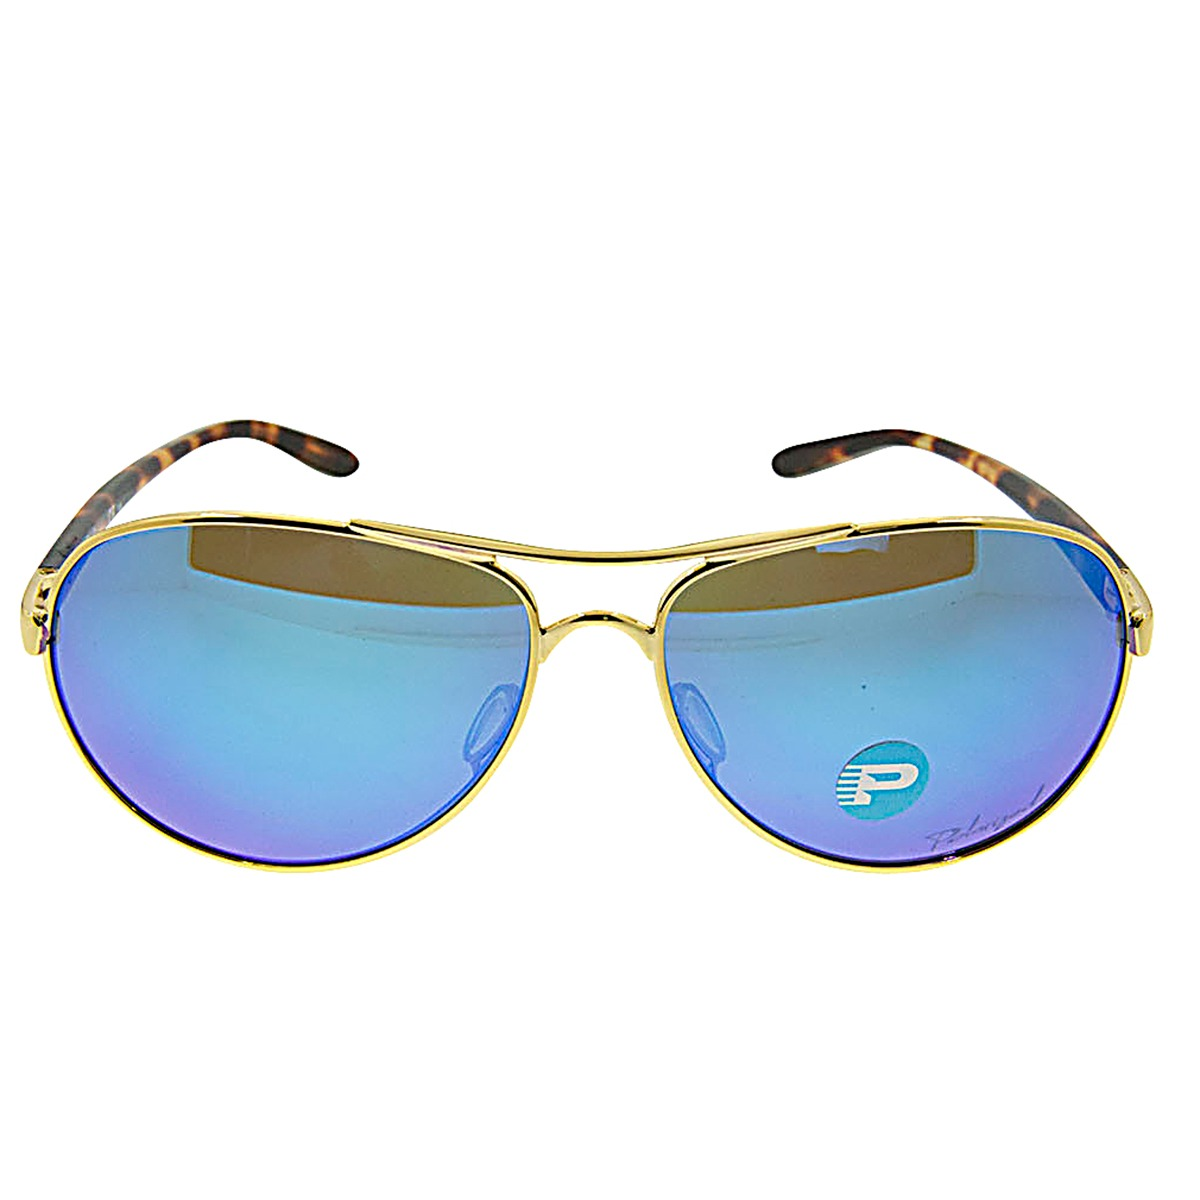 64736b5d6e Details about New Authentic Oakley Feedback Sunglasses Gold with Jade  Iridium Lenses-Polarized